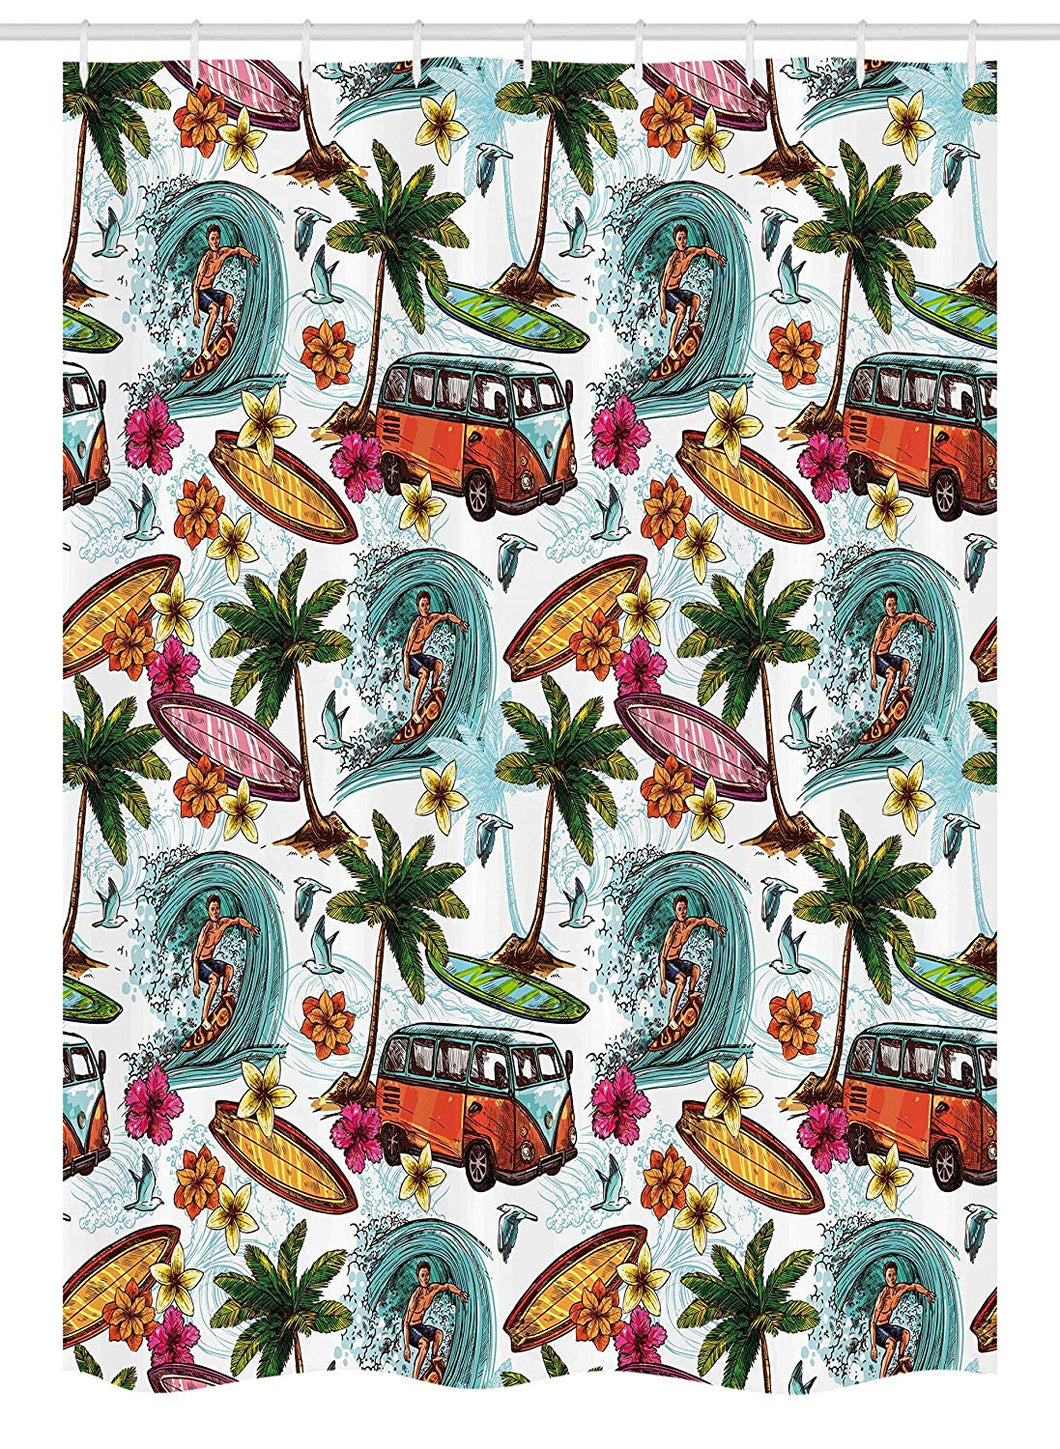 Ambesonne Ocean Stall Shower Curtain, Hawaiian Surfer on Wavy Deep Sea Retro Style Palm Trees Flowers Surf Boards Print, Fabric Bathroom Decor Set with Hooks, 54